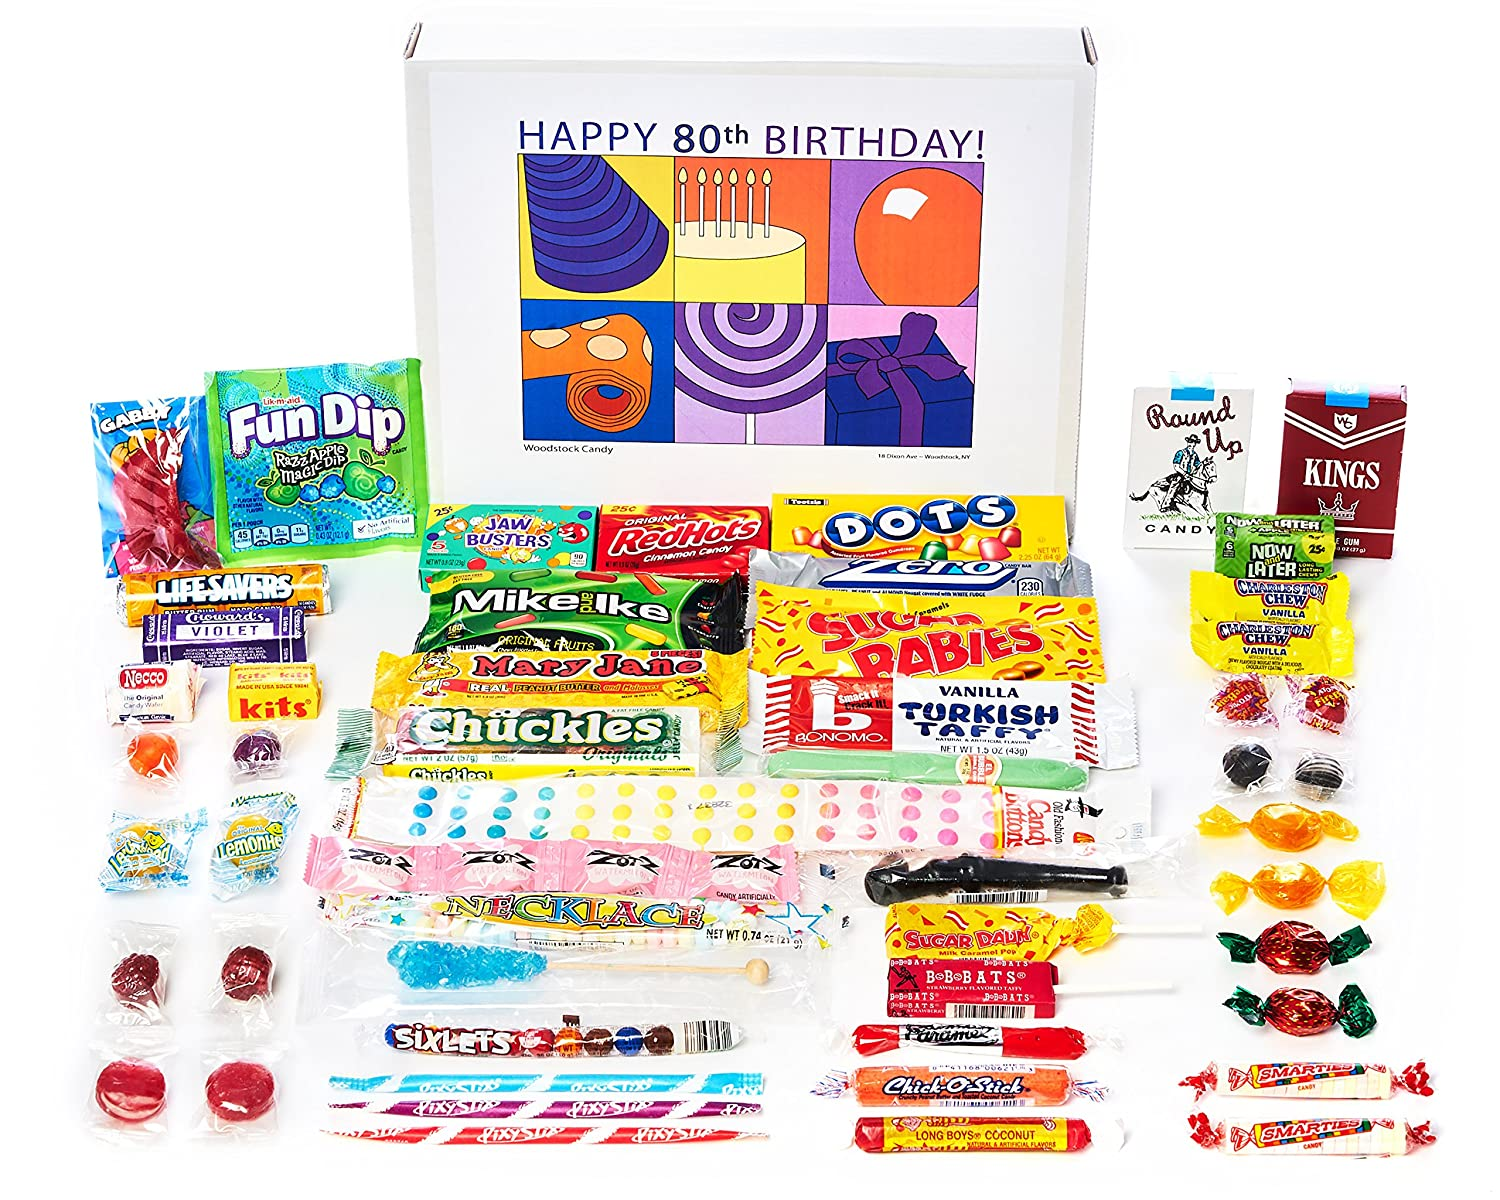 Amazoncom Woodstock Candy 80th Birthday Gift For 80 Year Old